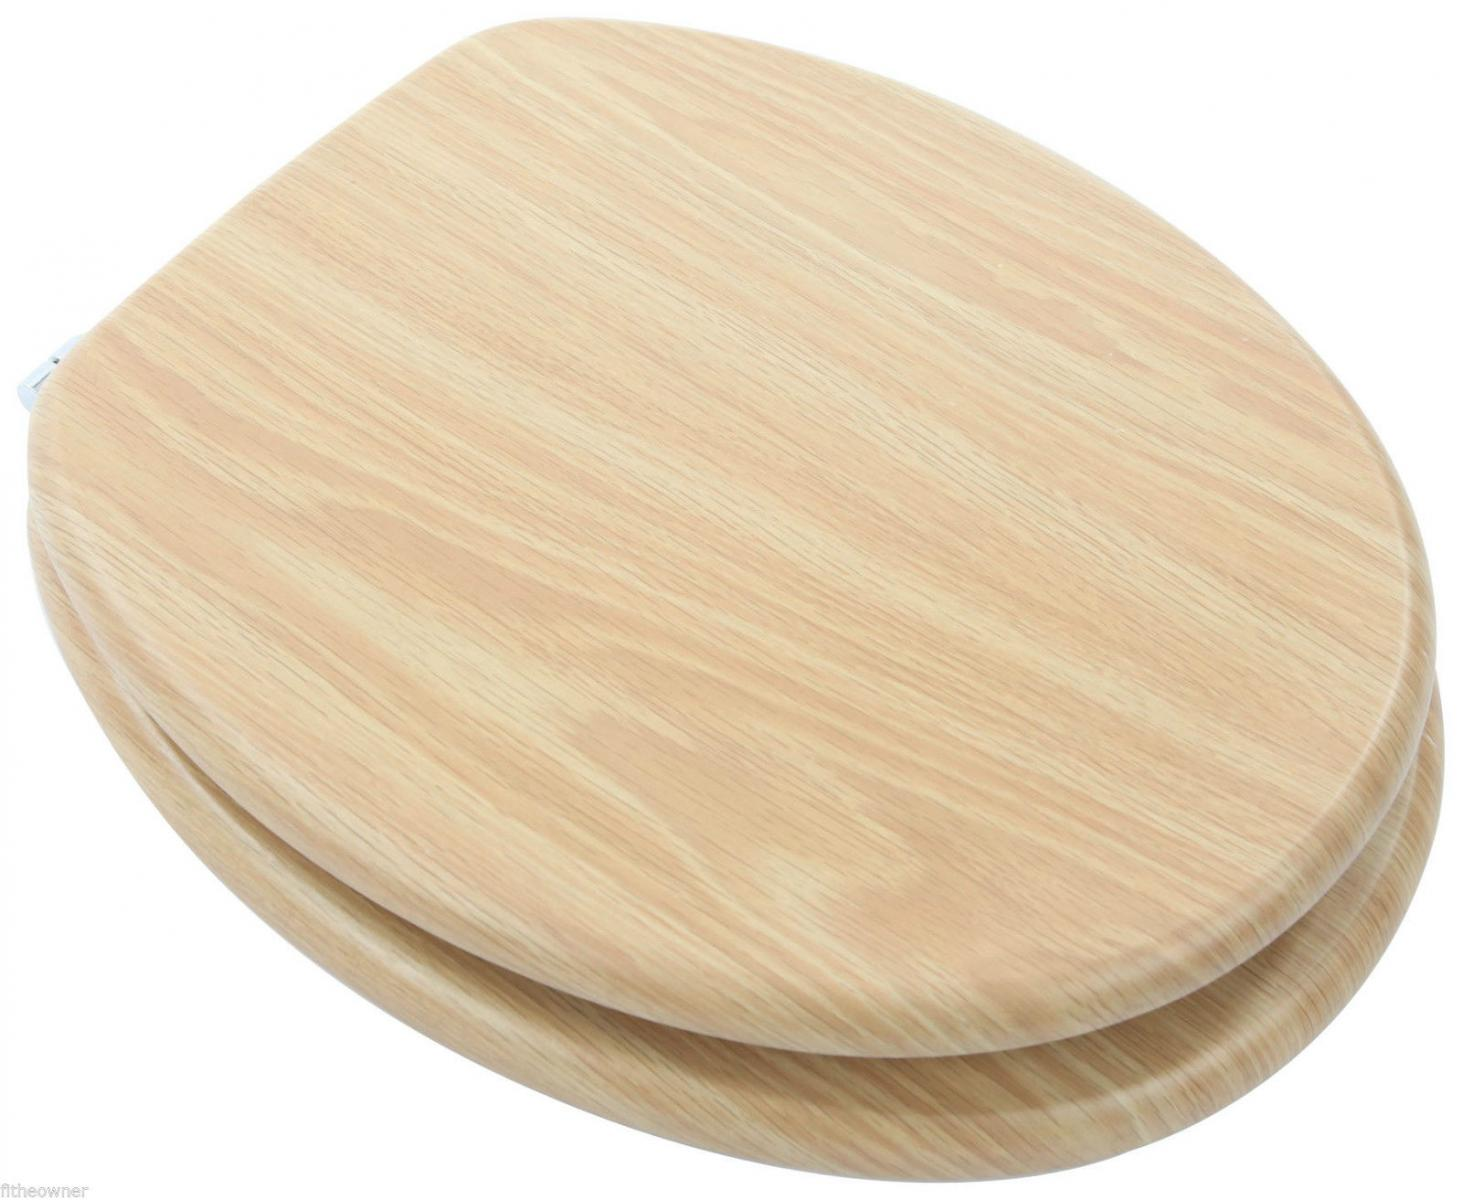 euroshowers mdf wood design toilet seat range beech walnut